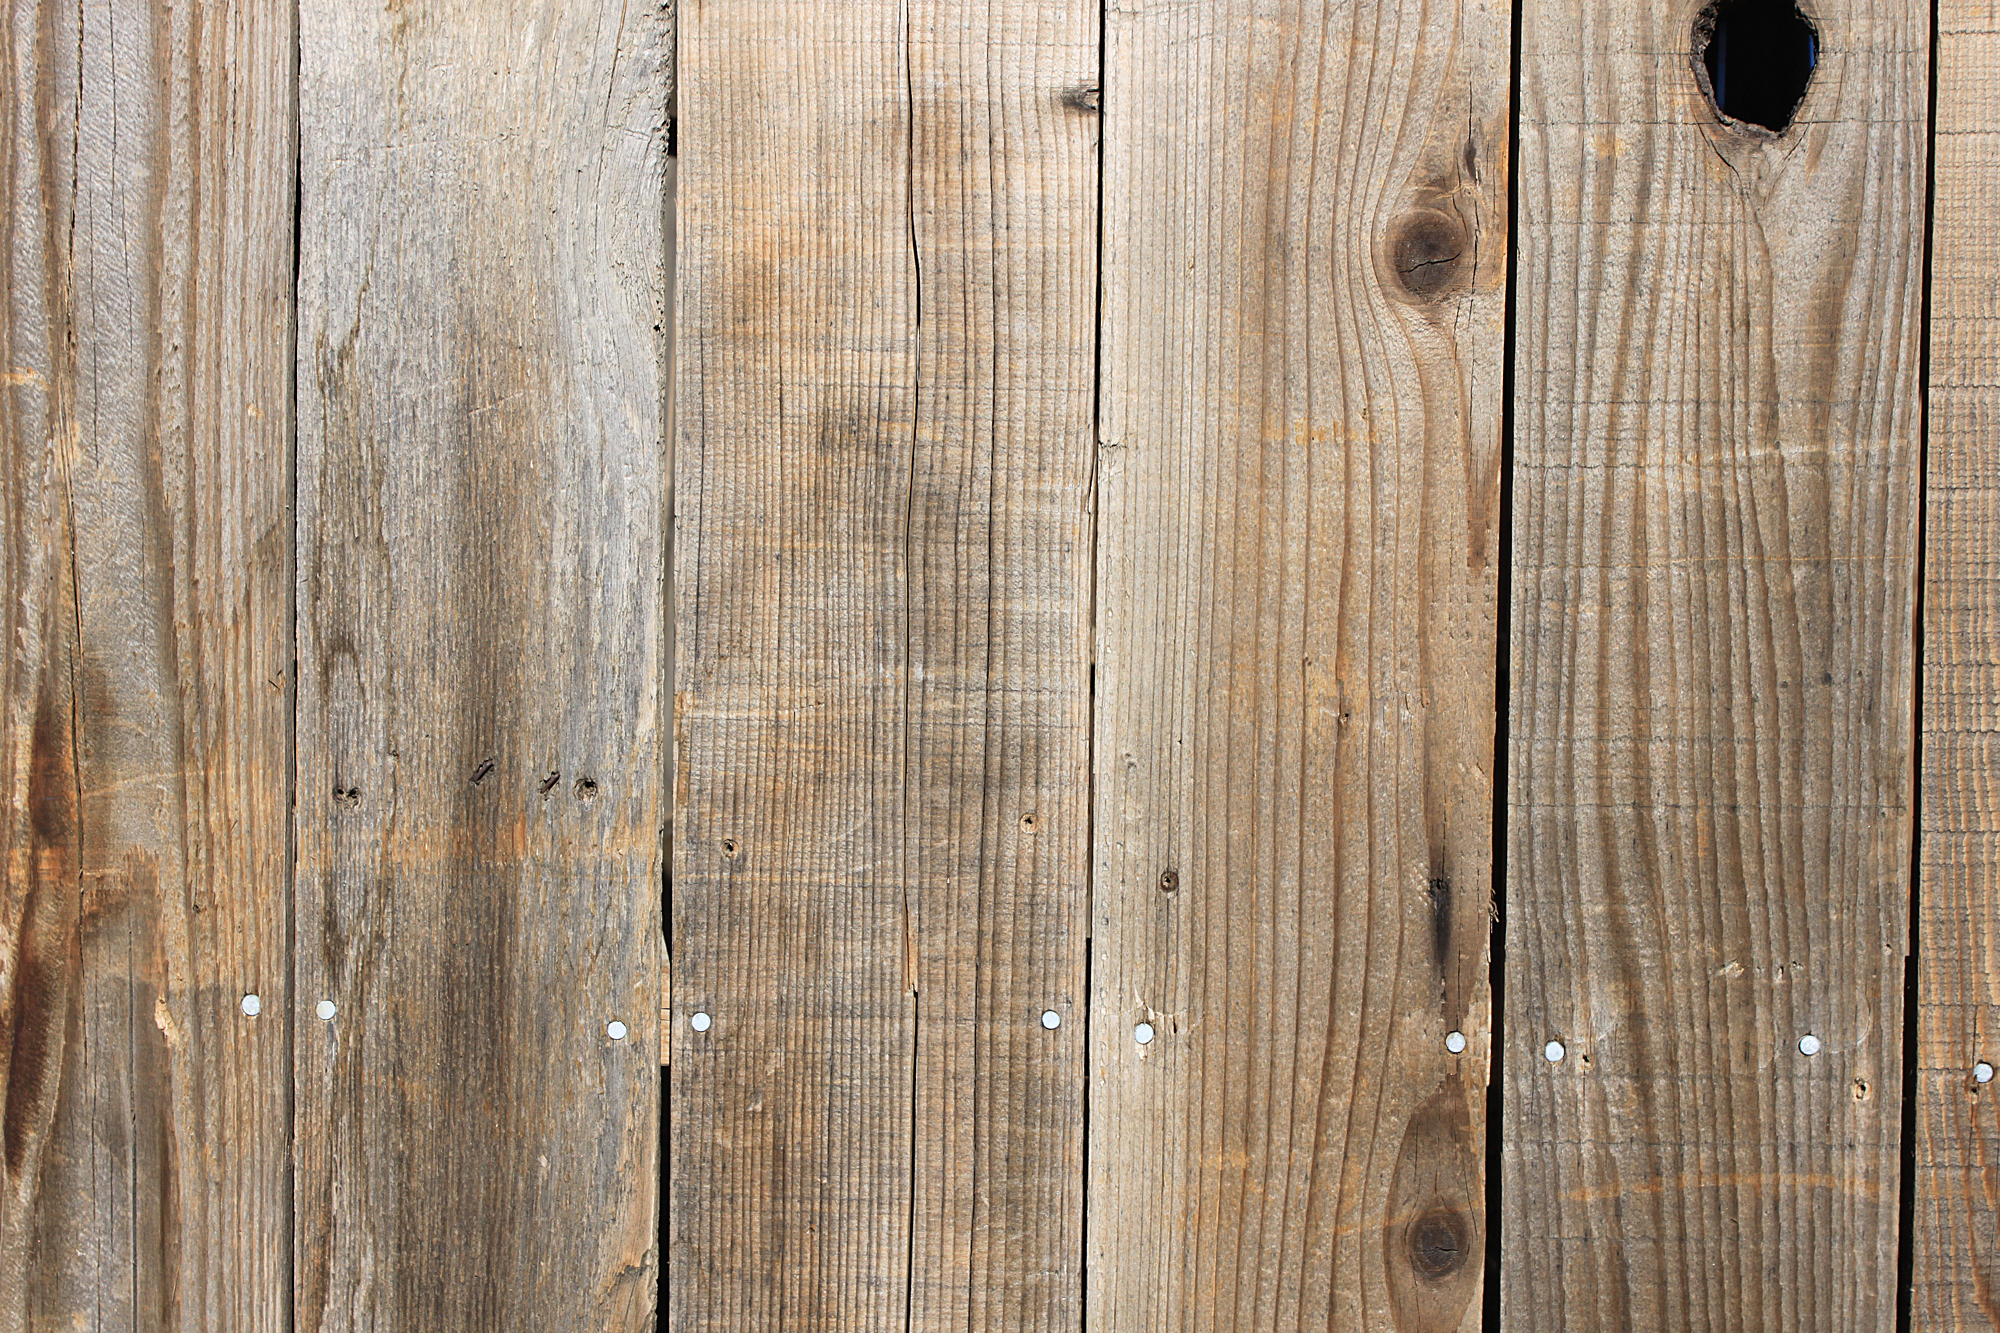 Rustic Wooden Textures Download JPG